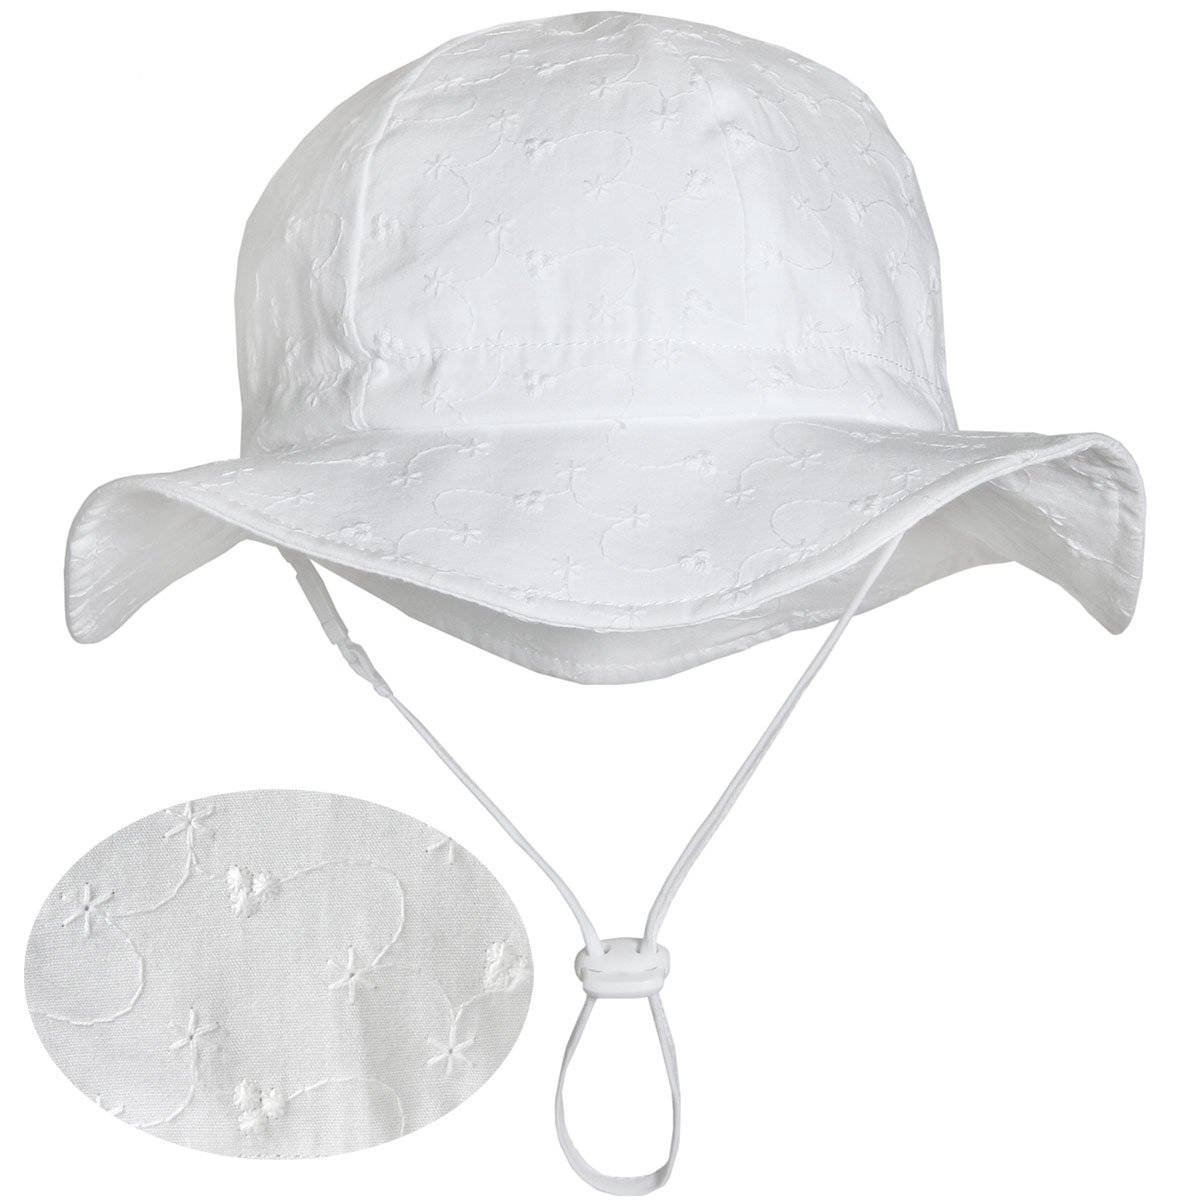 d8f346313 Eyelet Toddler Sun Hat 50+ UPF Cotton Size Adjustable + Chinstrap(M: 9m -  3Y, White eyelet)